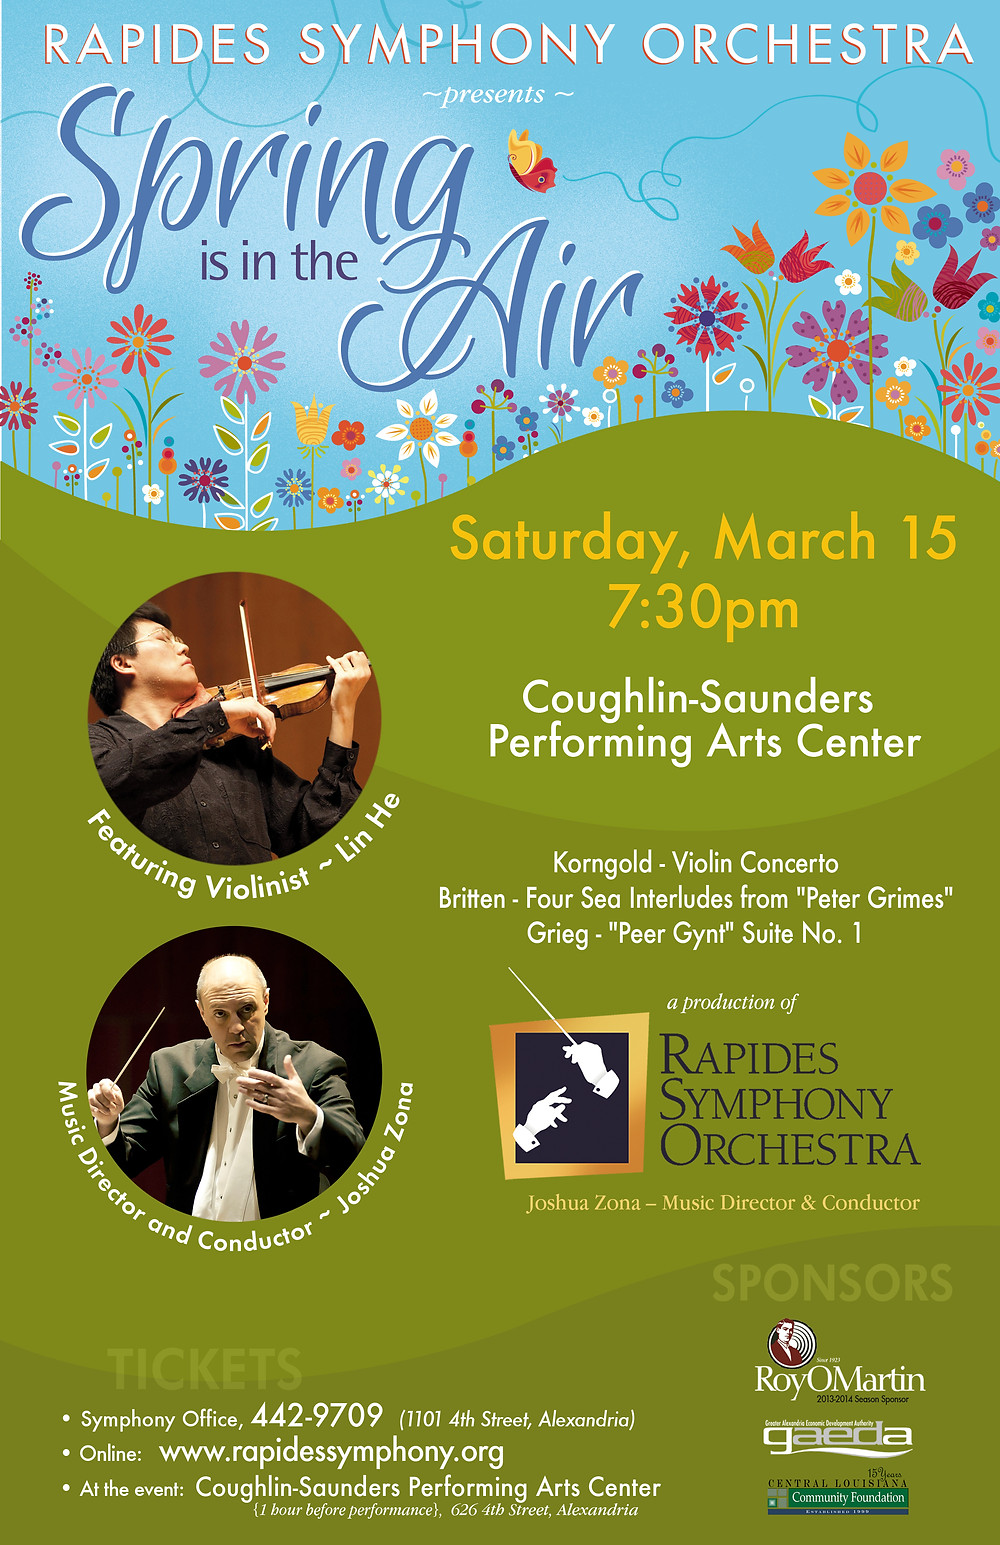 Rapides Symphony Orchestra Spring is in the Air